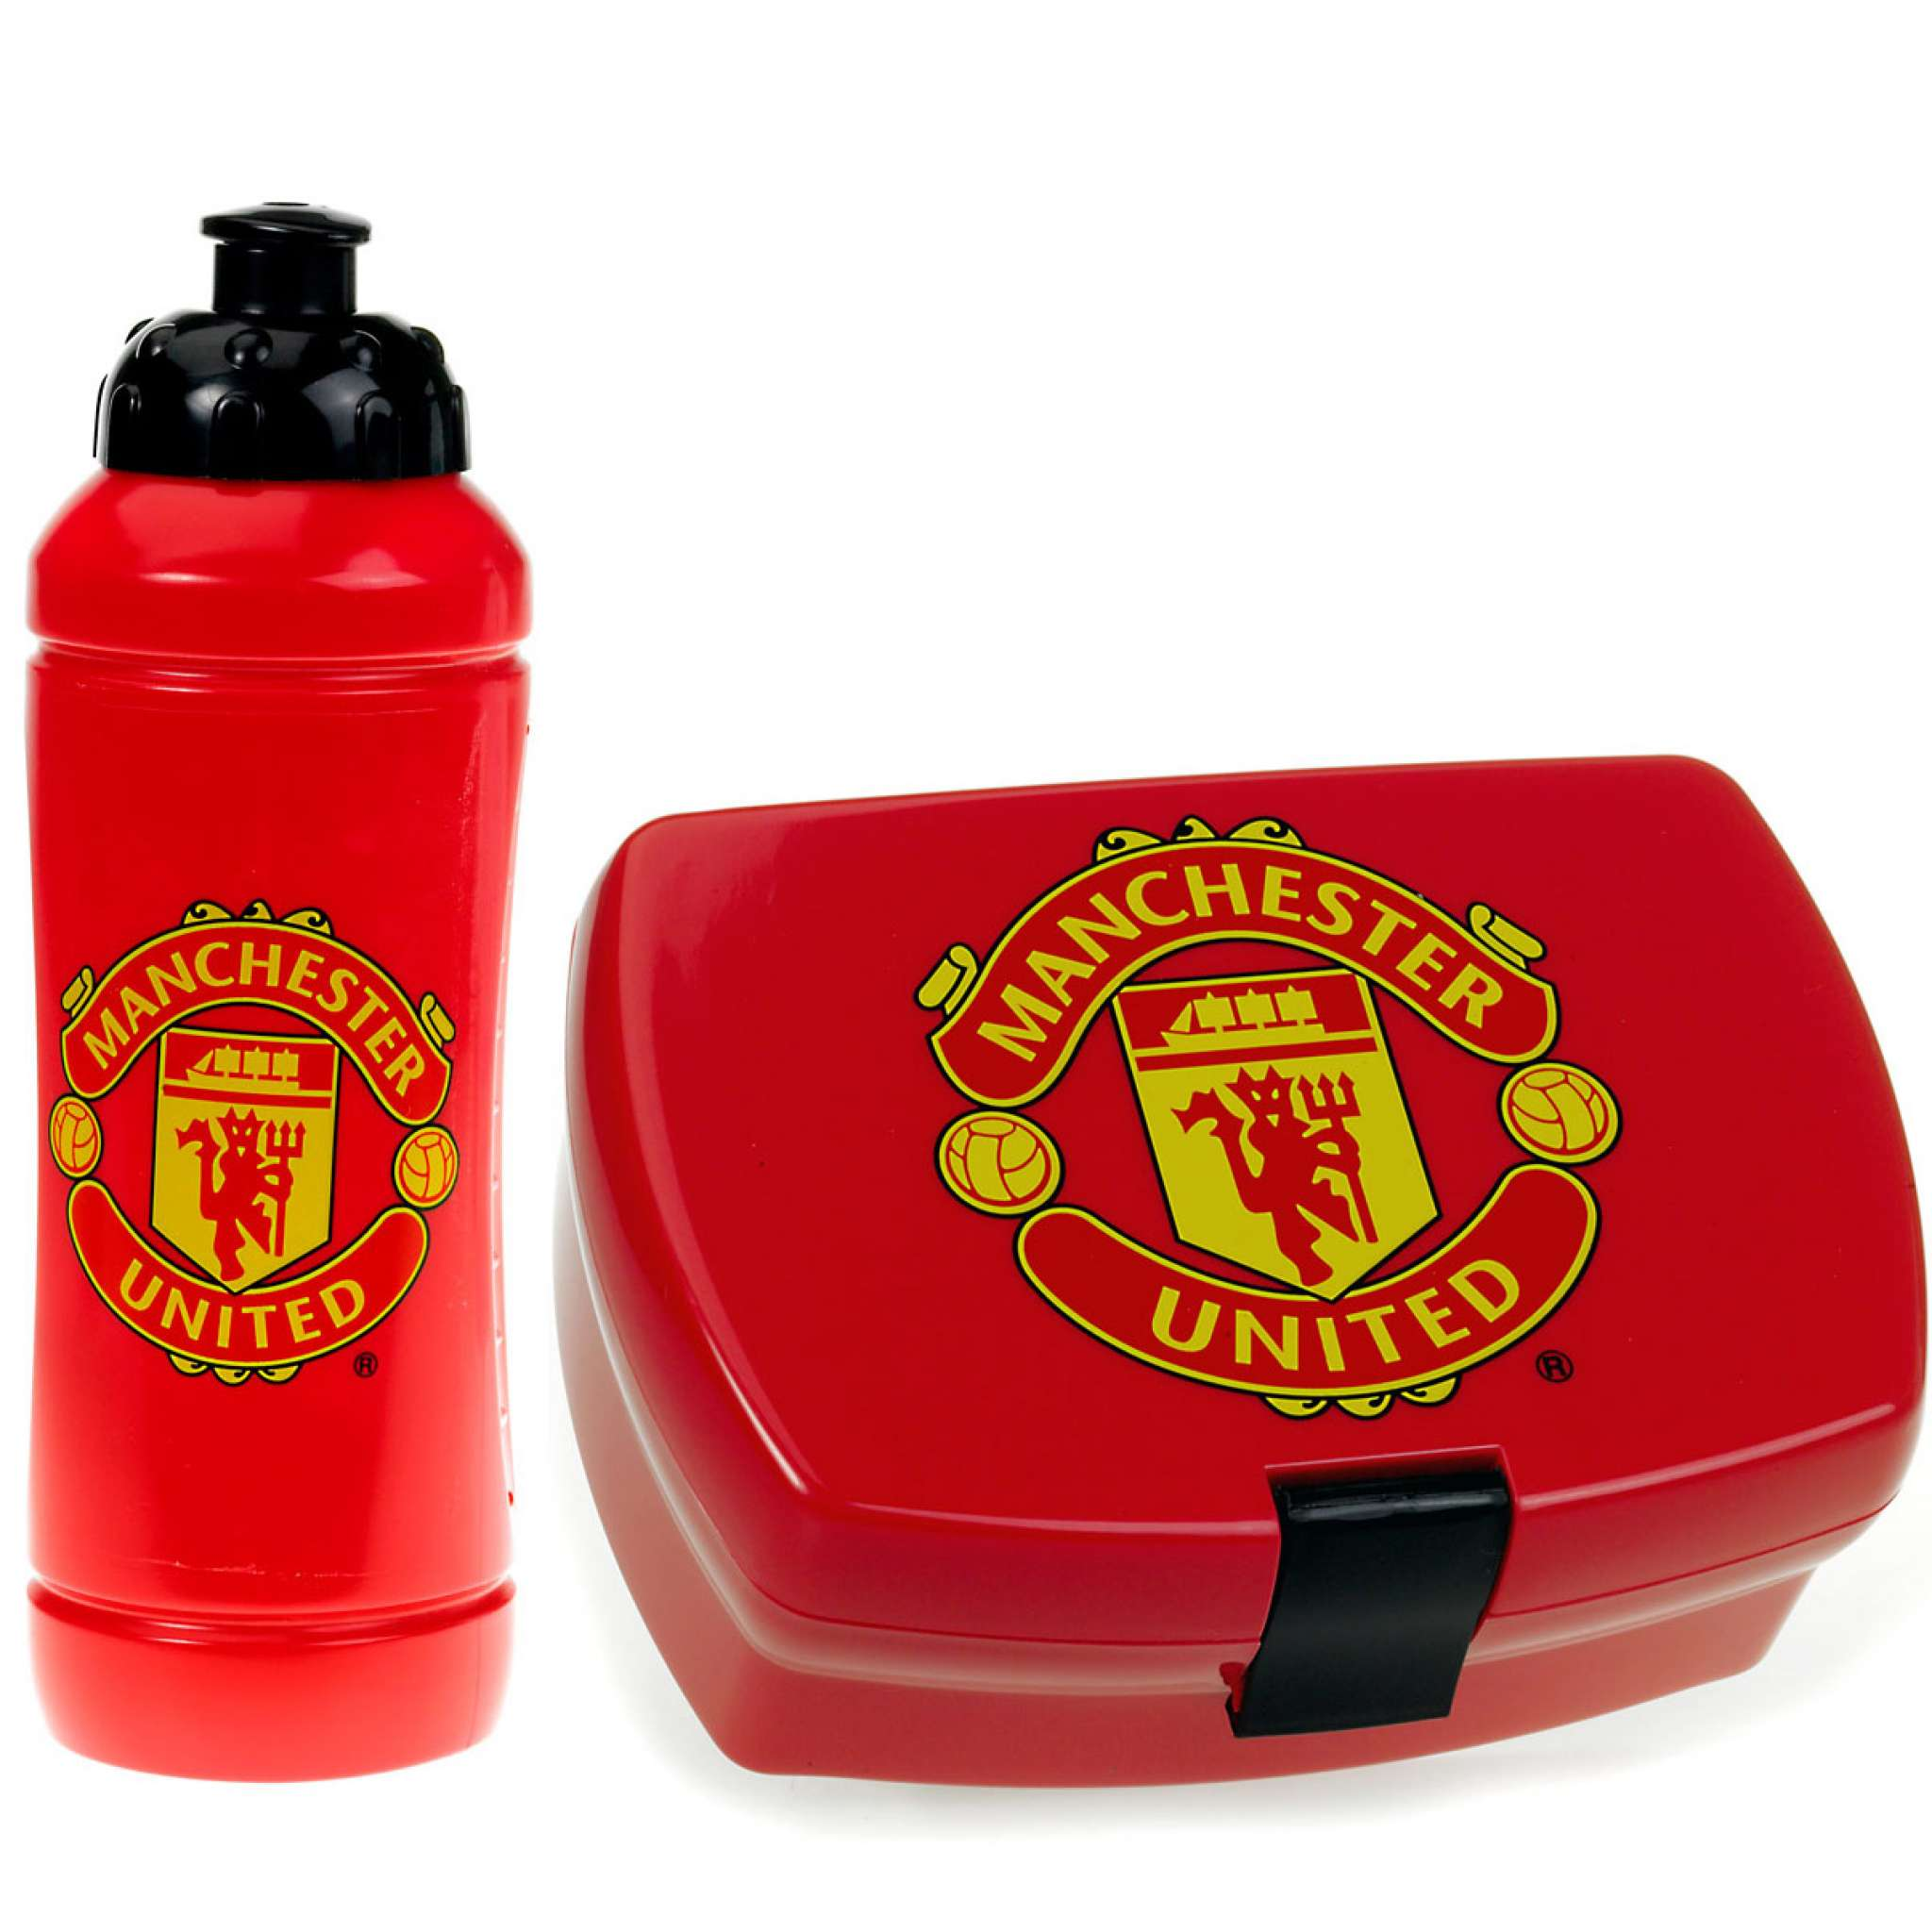 Lunchset Manchester United